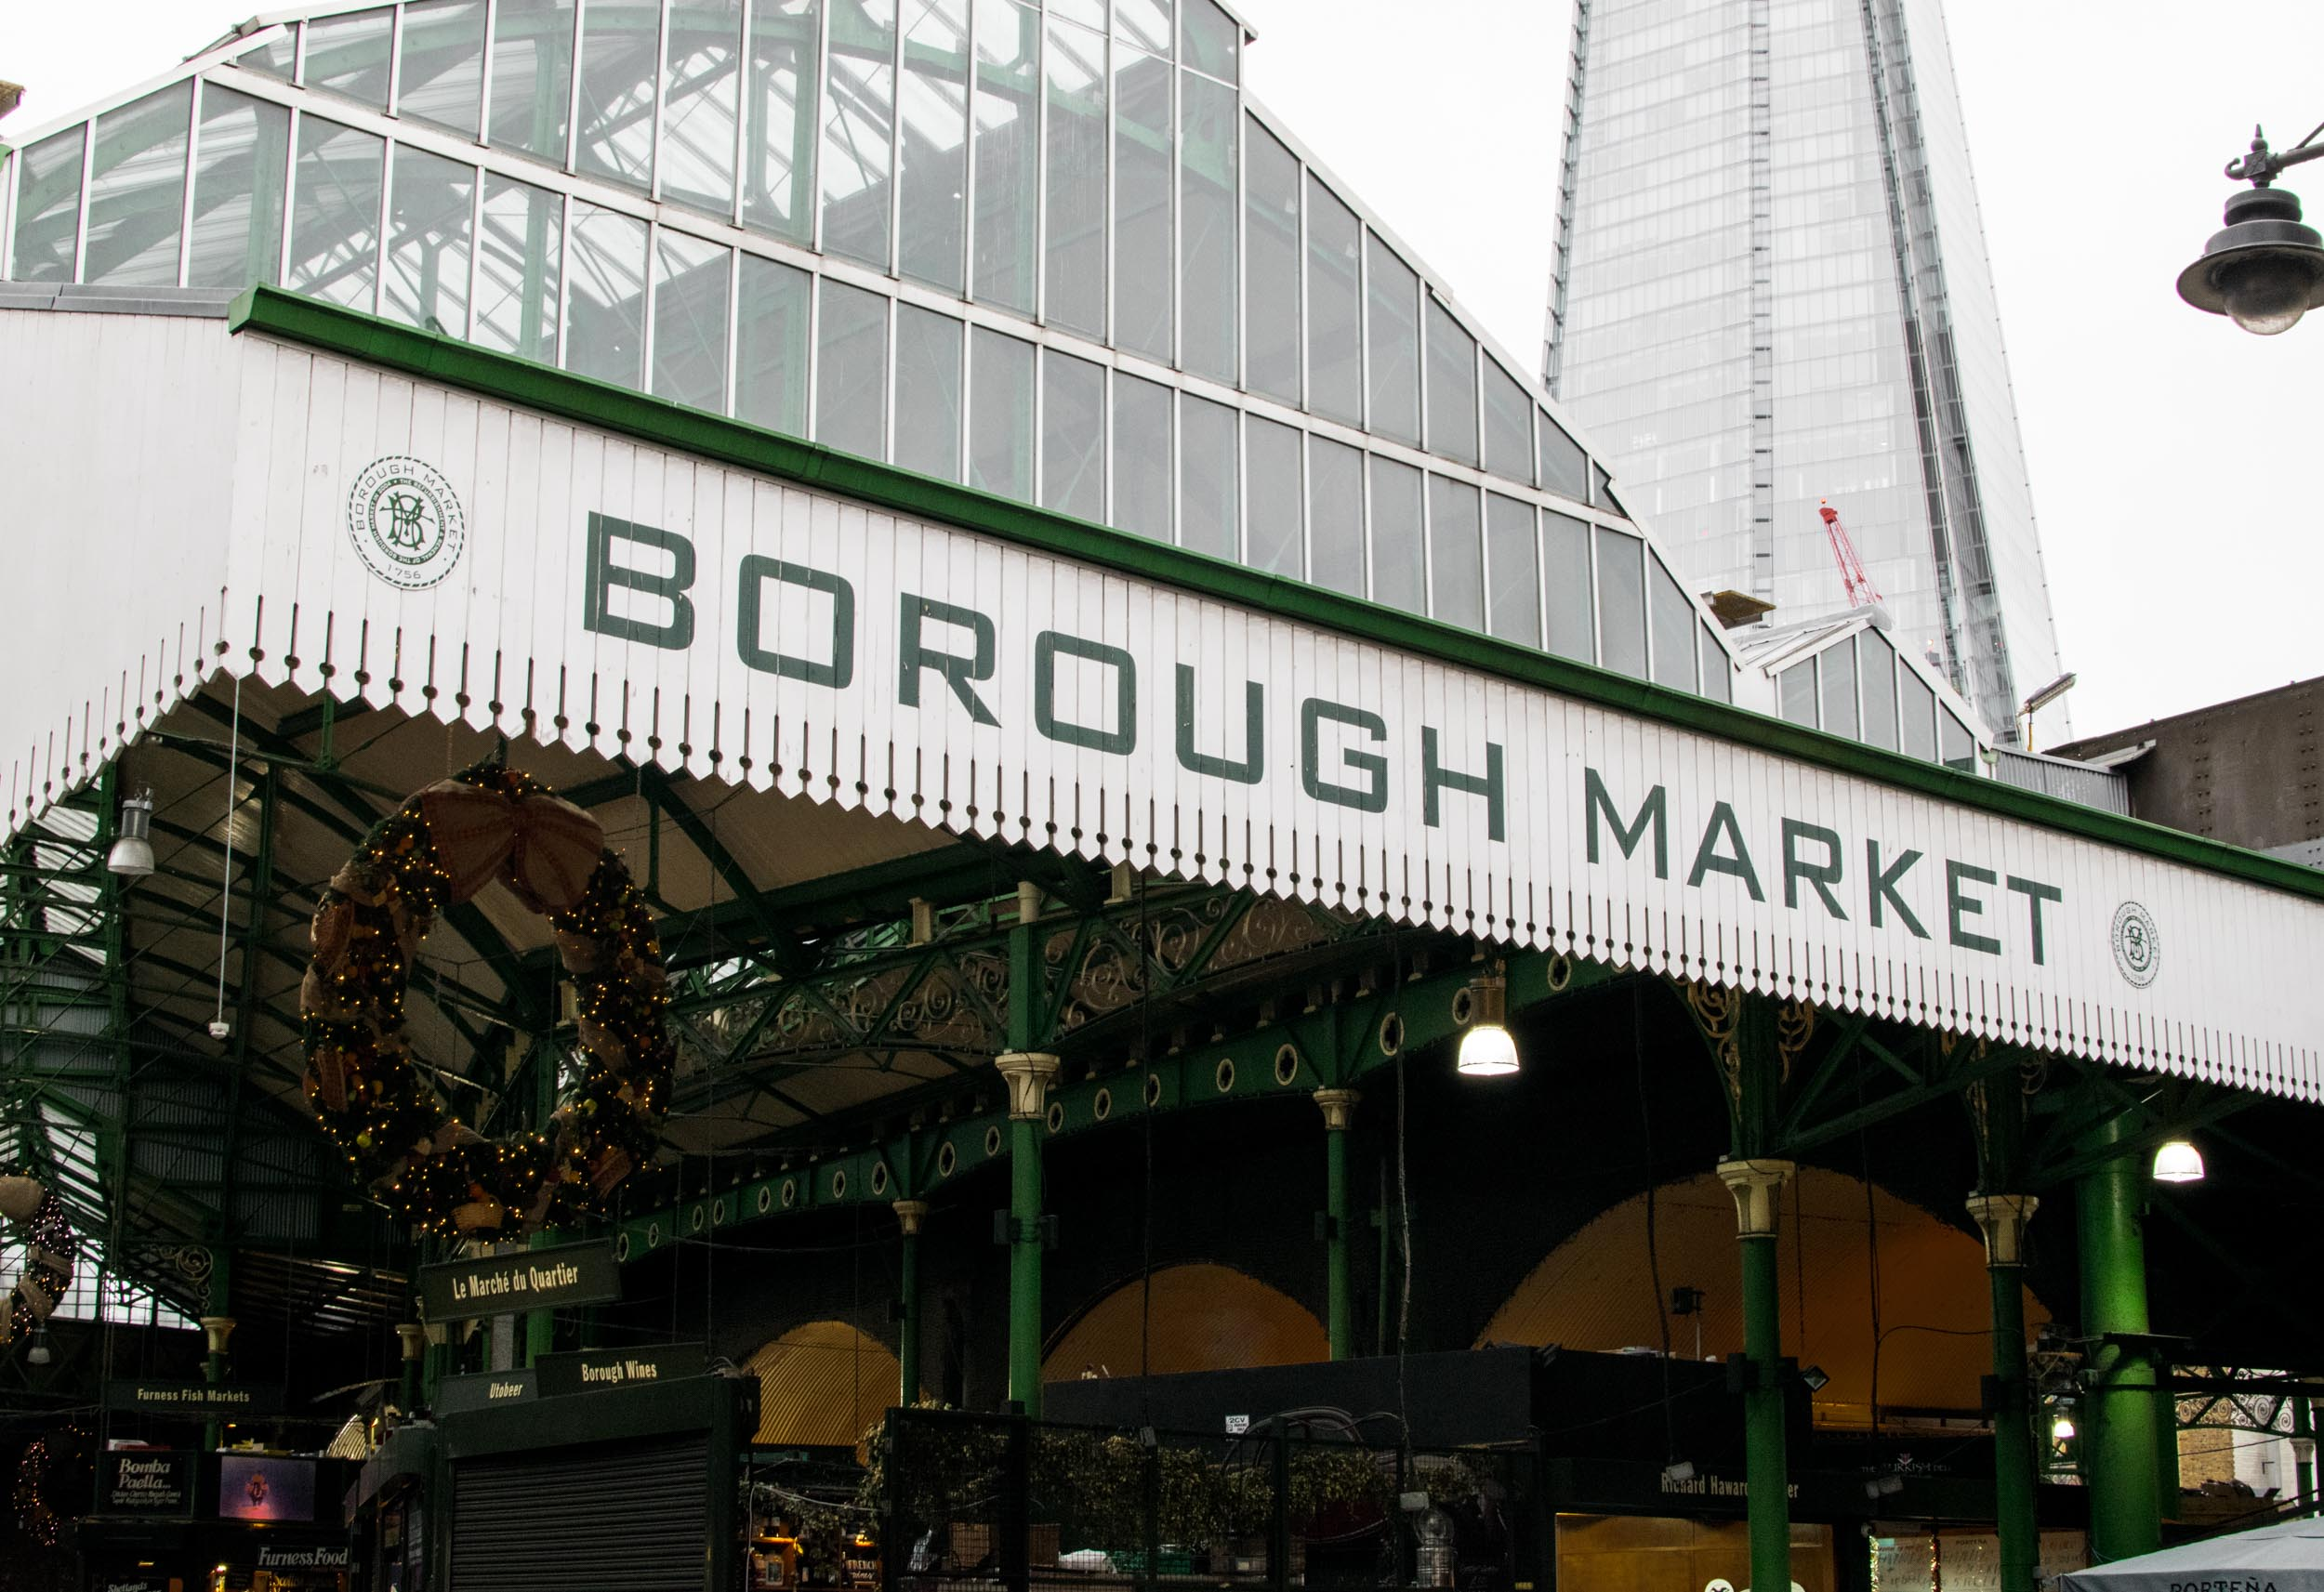 Borough Market, London's oldest foodie market with the Shard behind it.